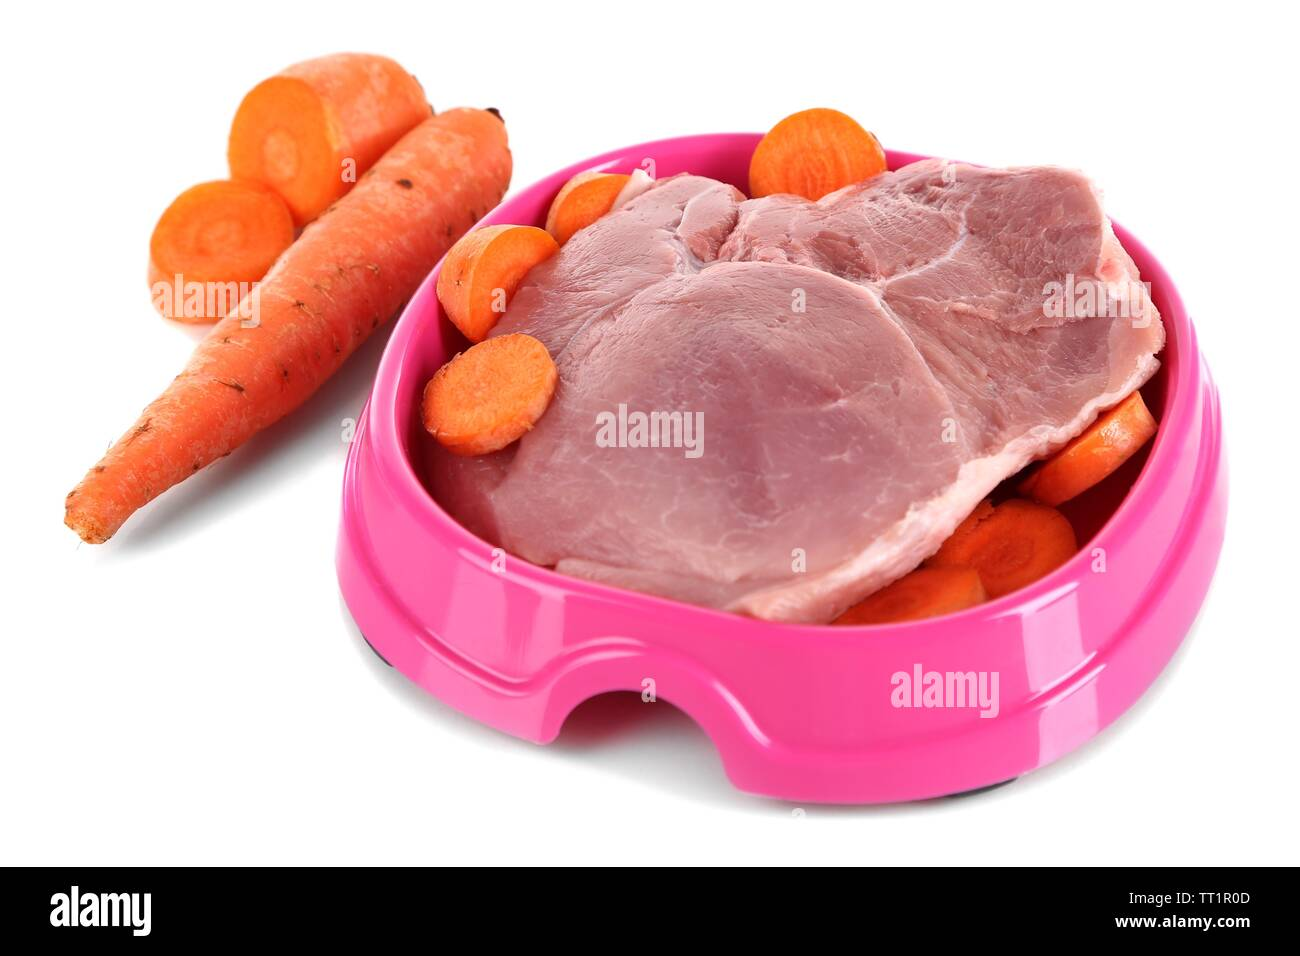 Natural food for pets in plastic bowl isolated on white - Stock Image